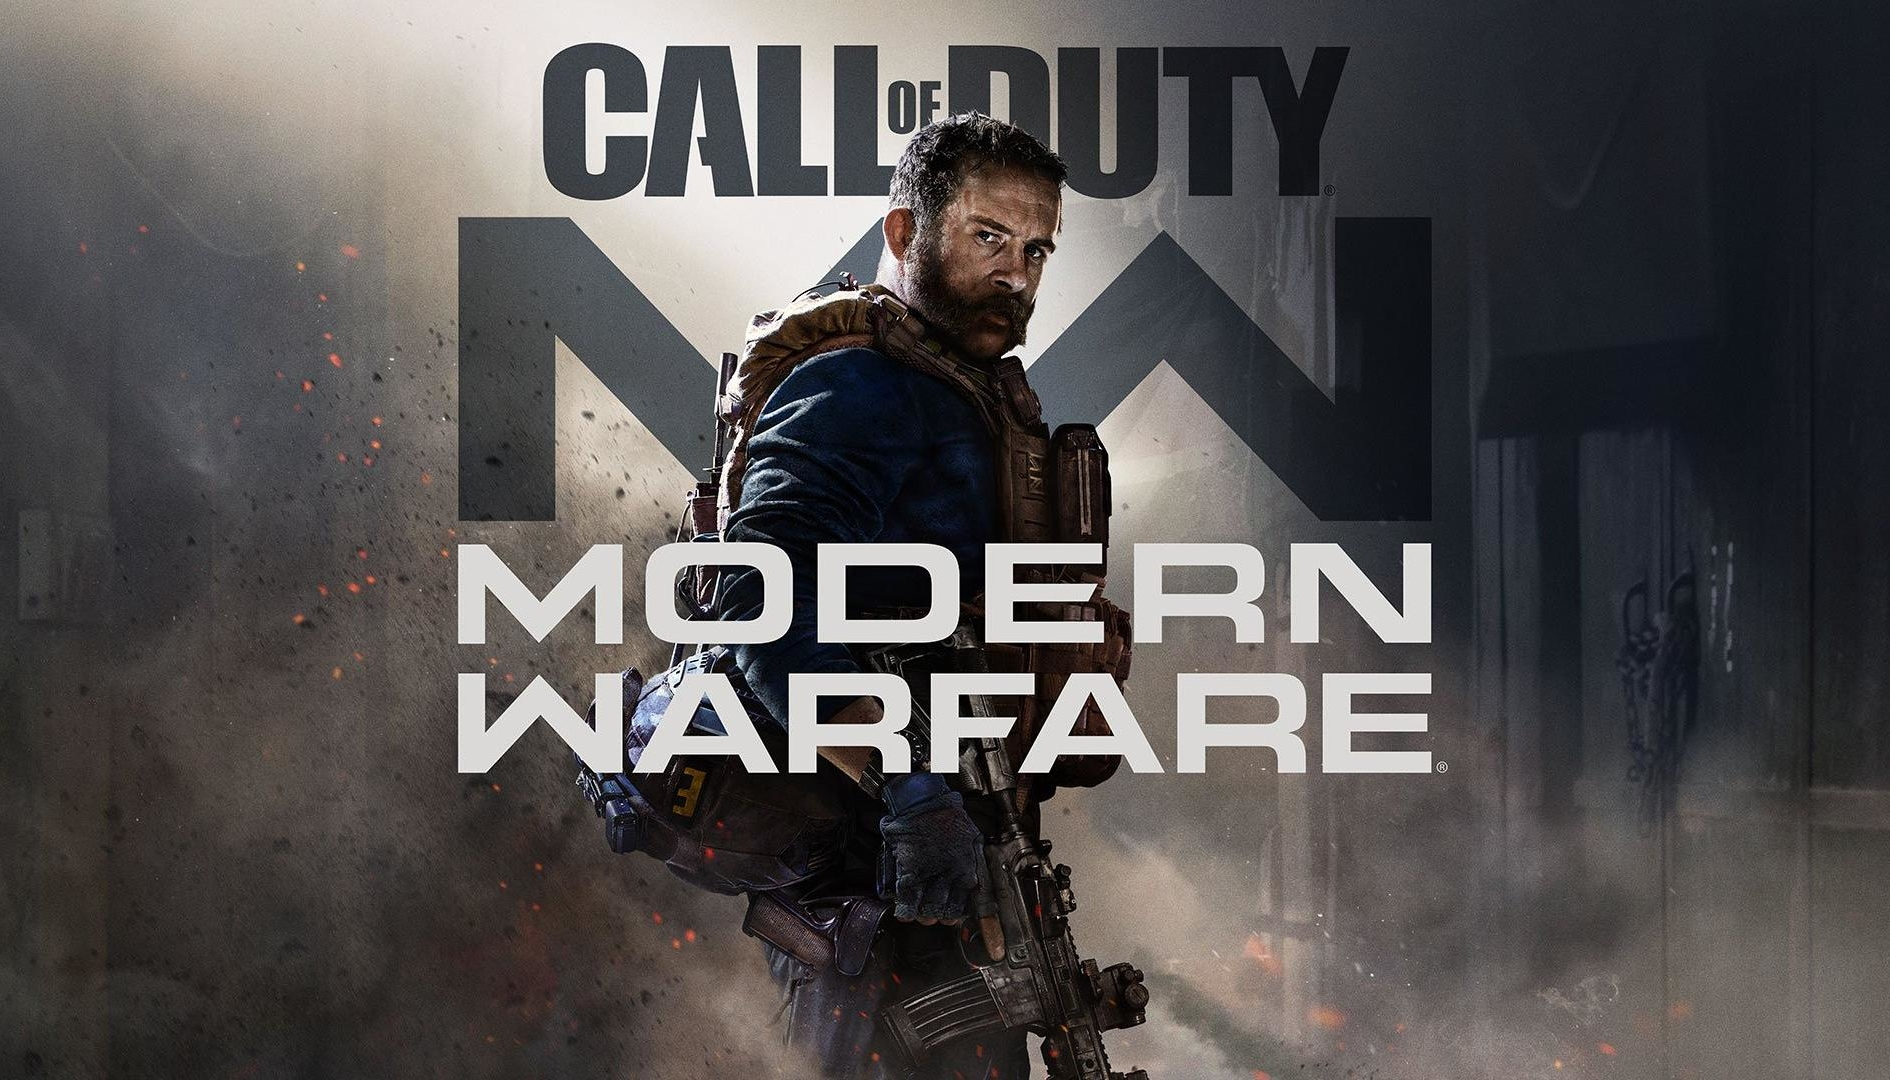 Call of Duty Modern Warfare: multiplayer gratis per pochi giorni